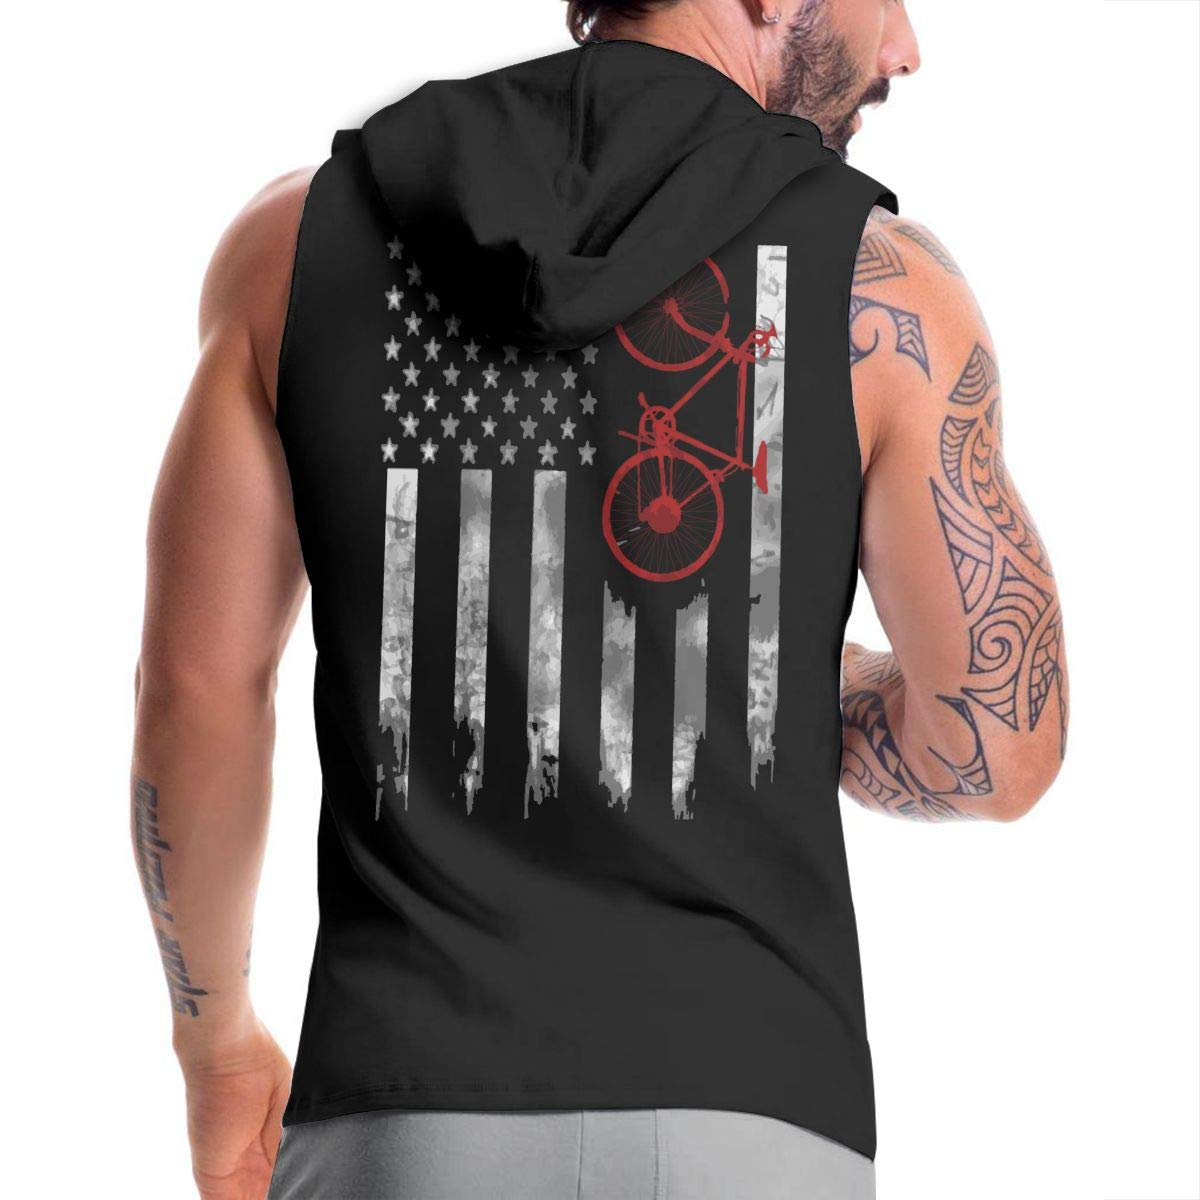 Bicycle Flag Mens Sleeveless Zipper Hooded Sweater Bodybuilding Tank Top